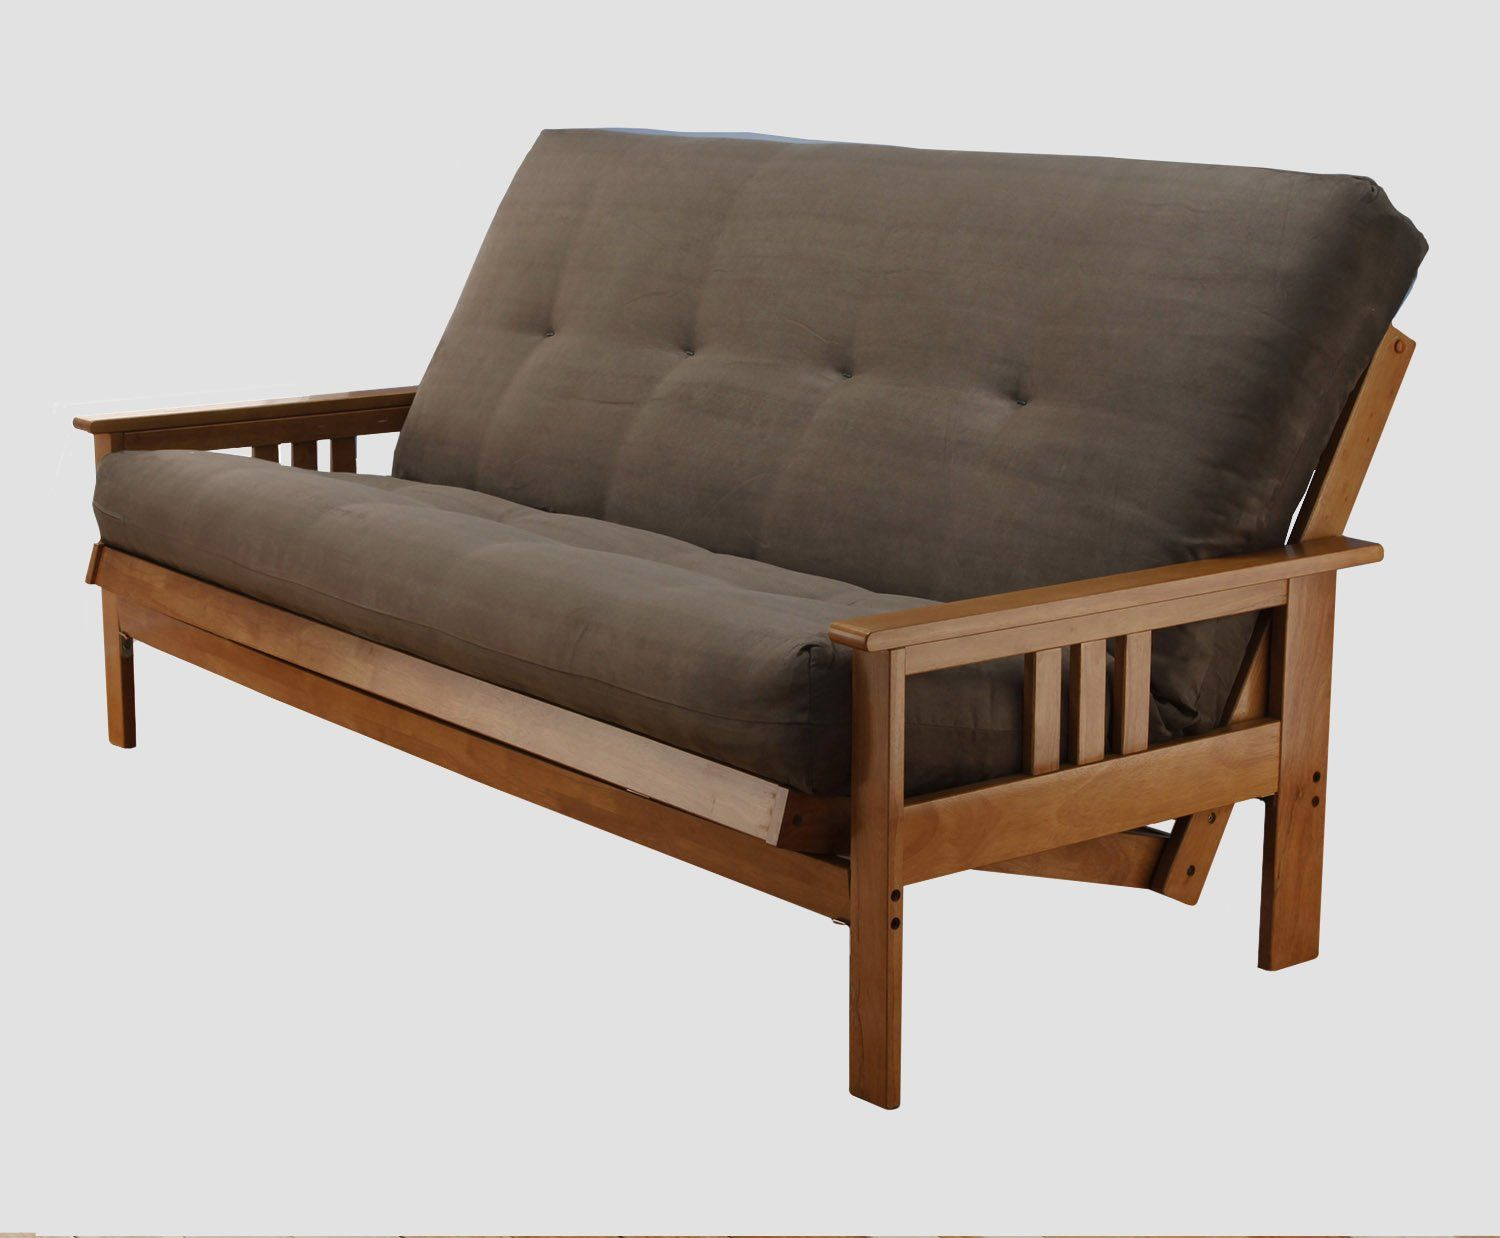 Suede Gray Mona Queen Futon Frame In Ernut Mattress You Can Find